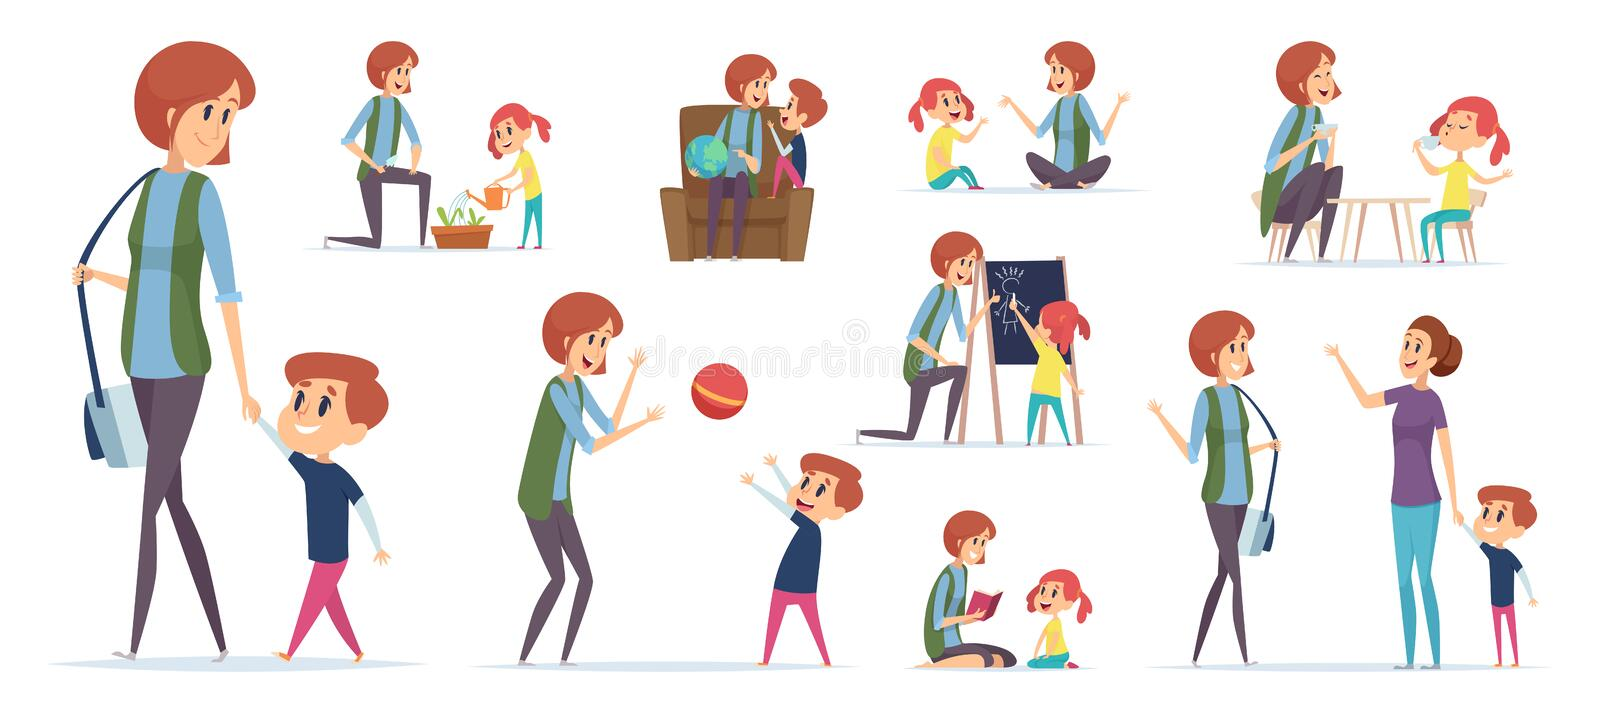 Reliable Child Care PNG Transparent Background, Free Download #42461 -  FreeIconsPNG